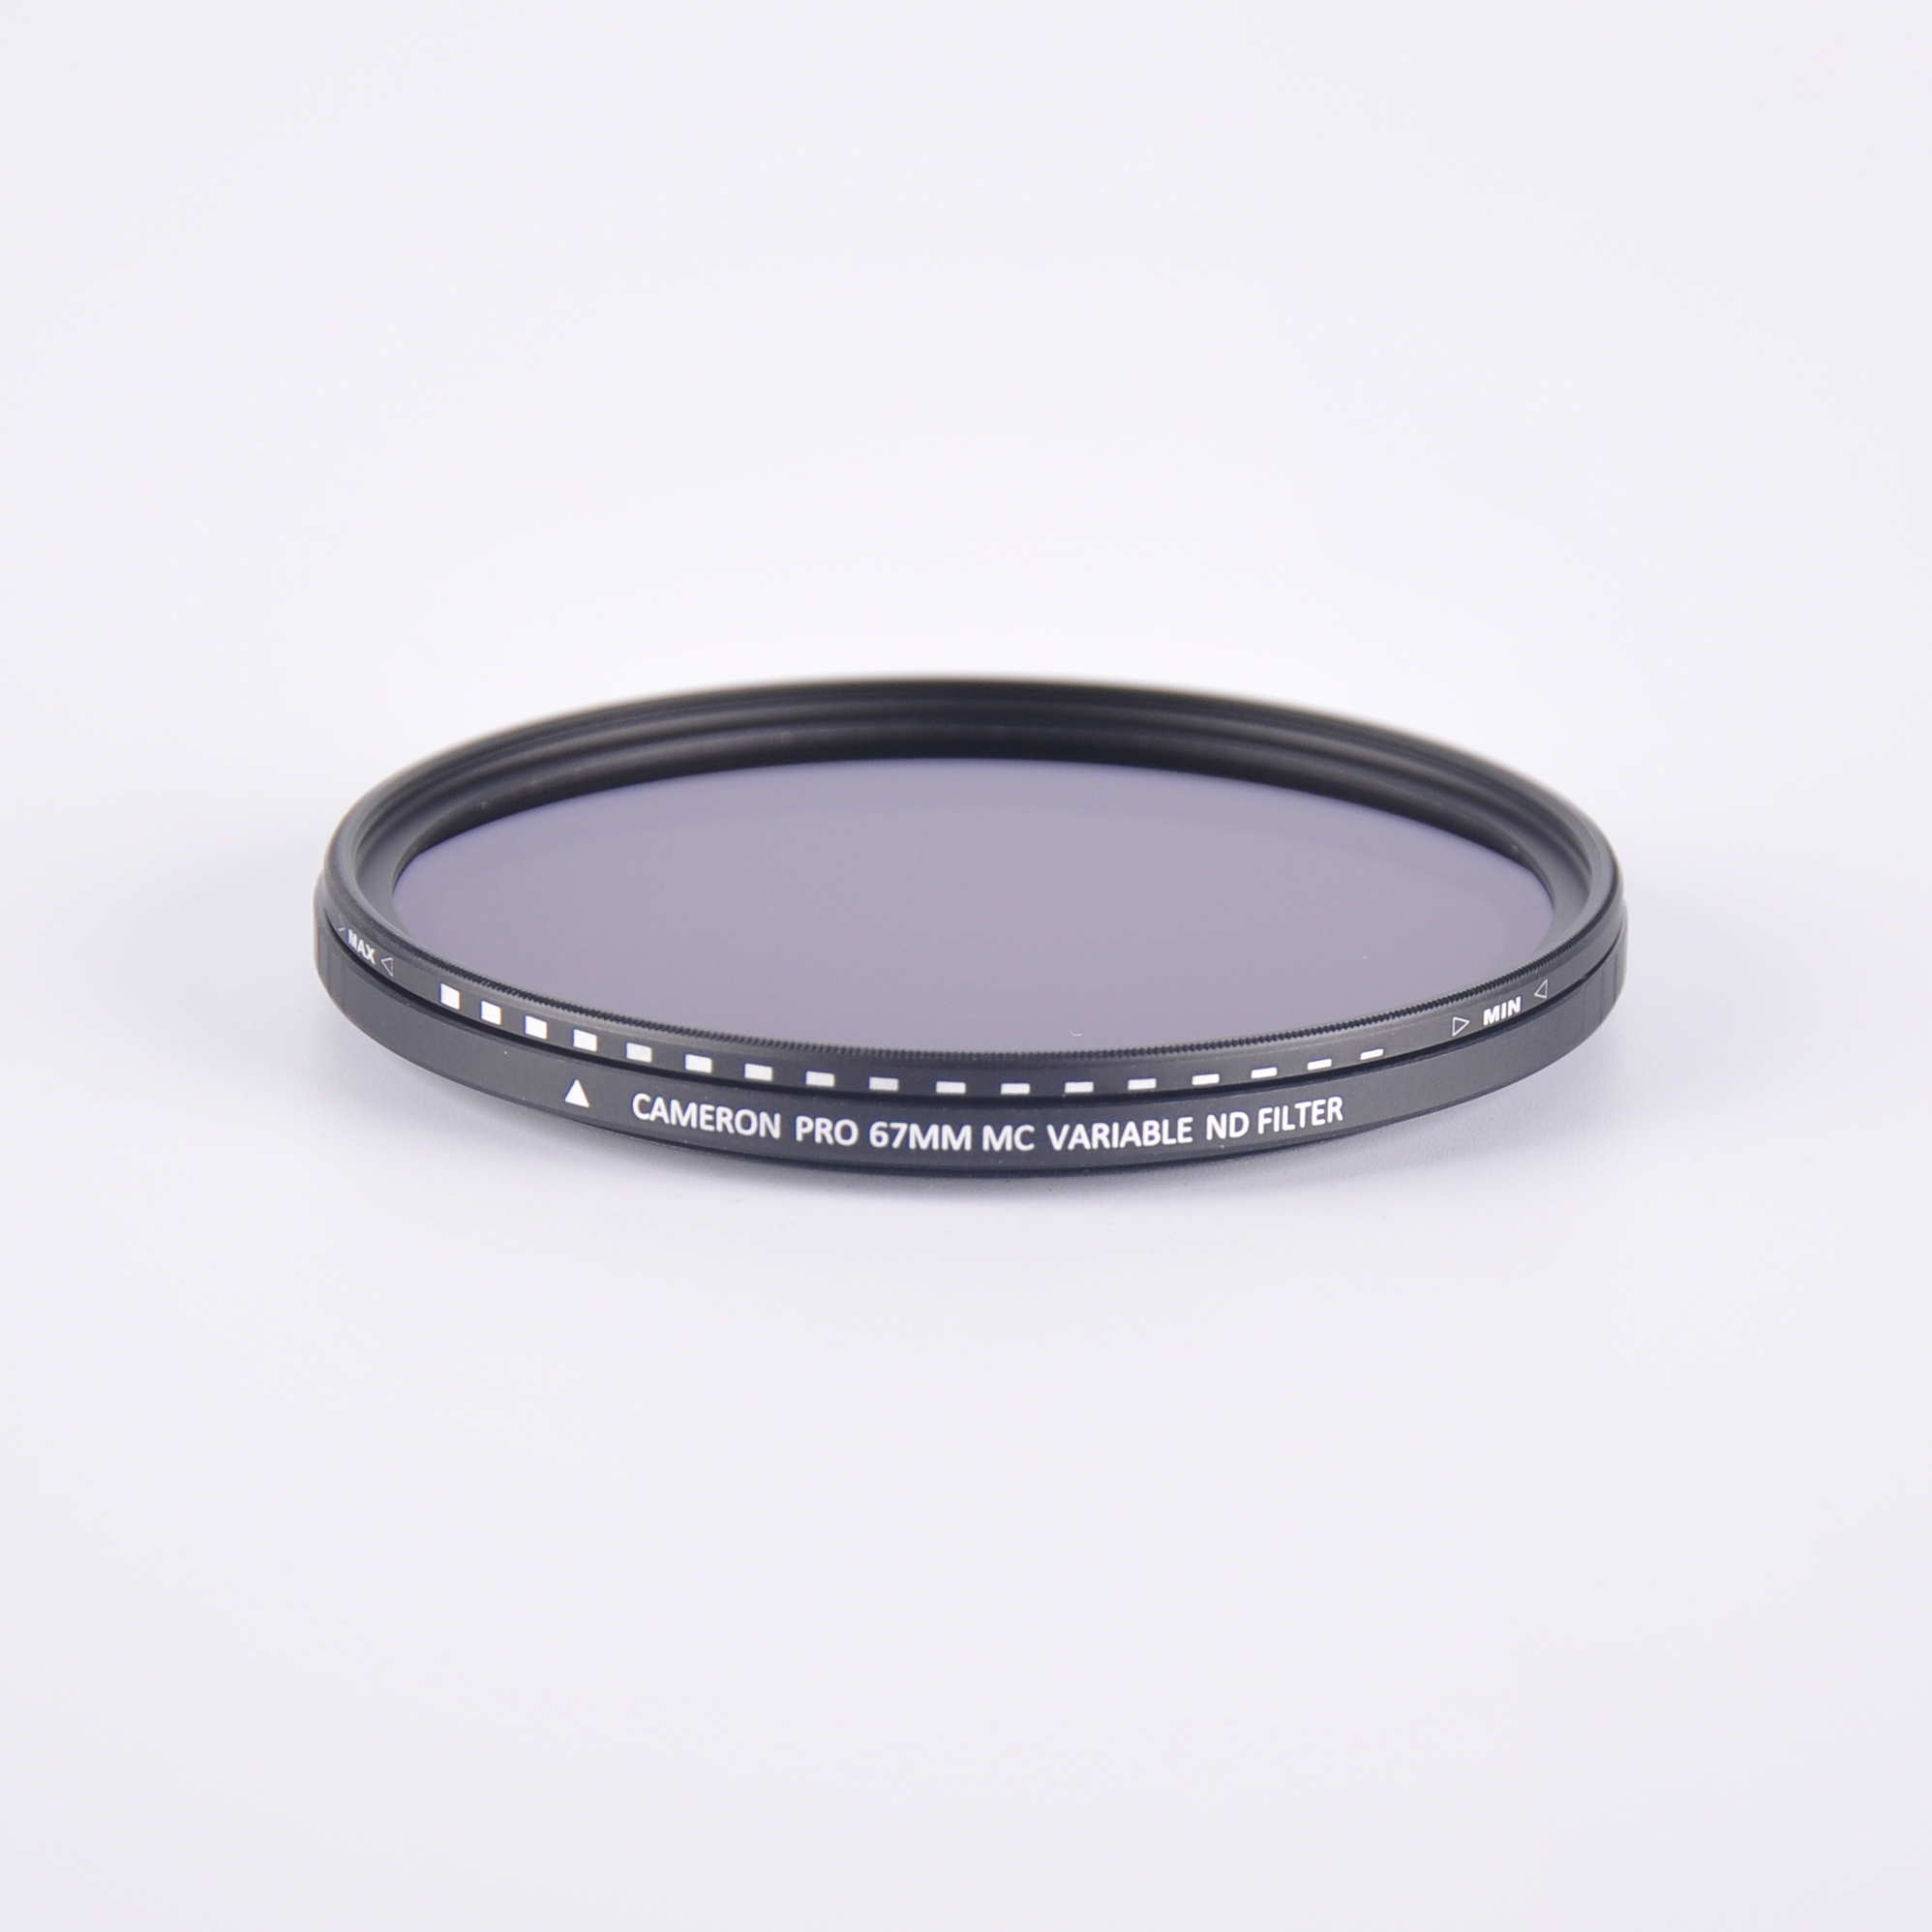 Filters Accessories Filter Uv Hoya 58mm Pro 1 Cameron Mc Variable Nd